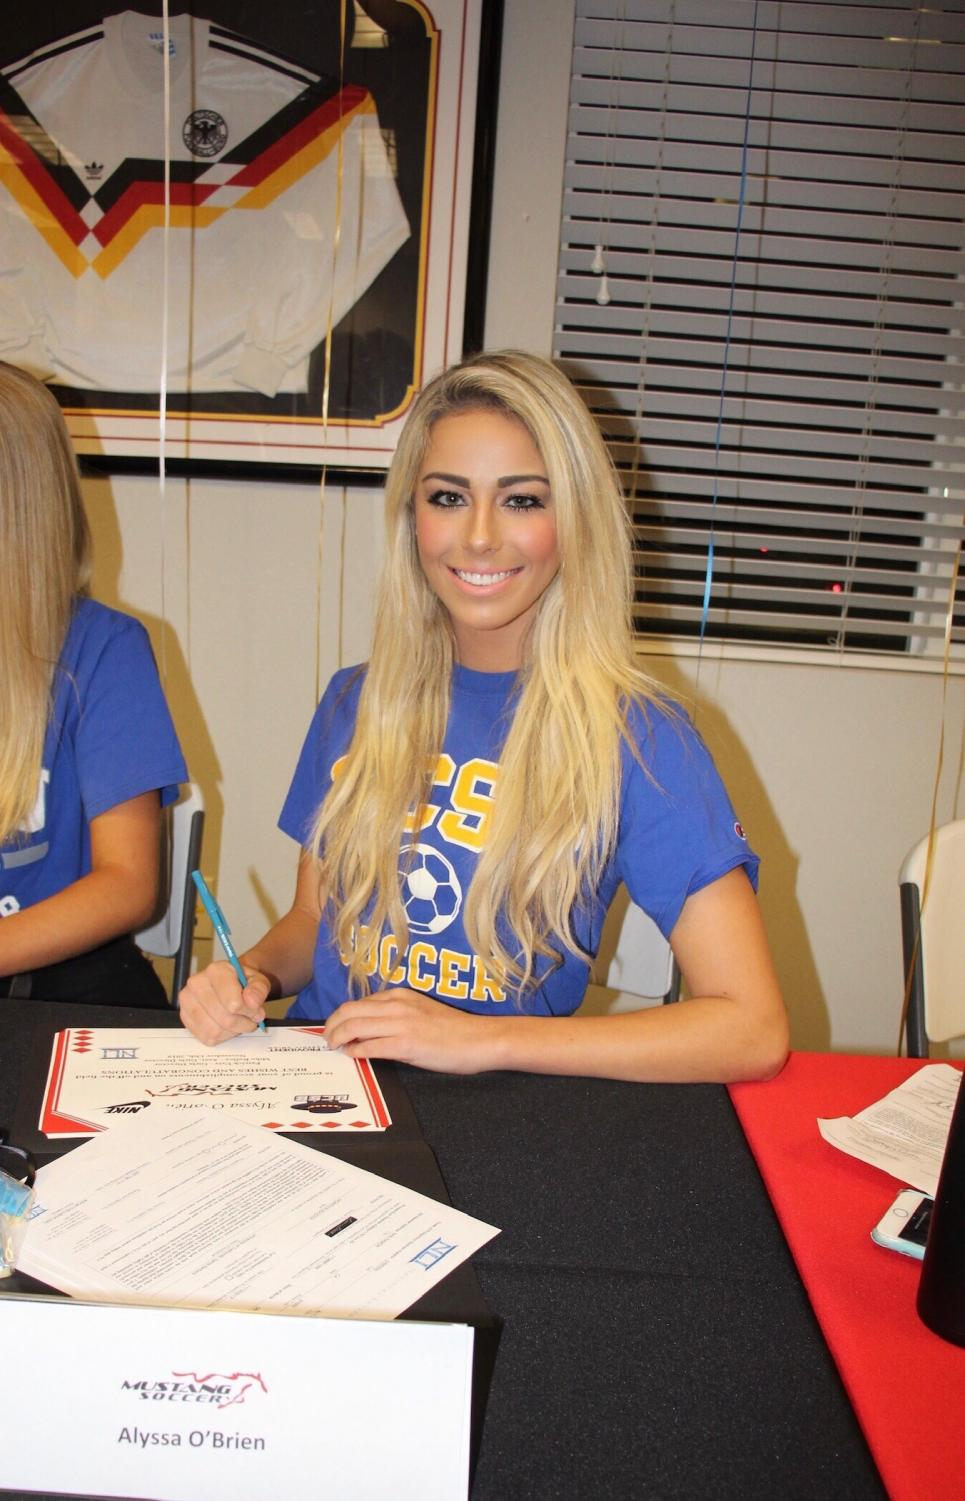 Senior Alyssa O'Brien has committed to UC Santa Barbara to play D1 soccer. She signed her national letter of intent on Nov. 14. Coming from a family with a sports background, O'Brien plans to pursue a communications major while in college.